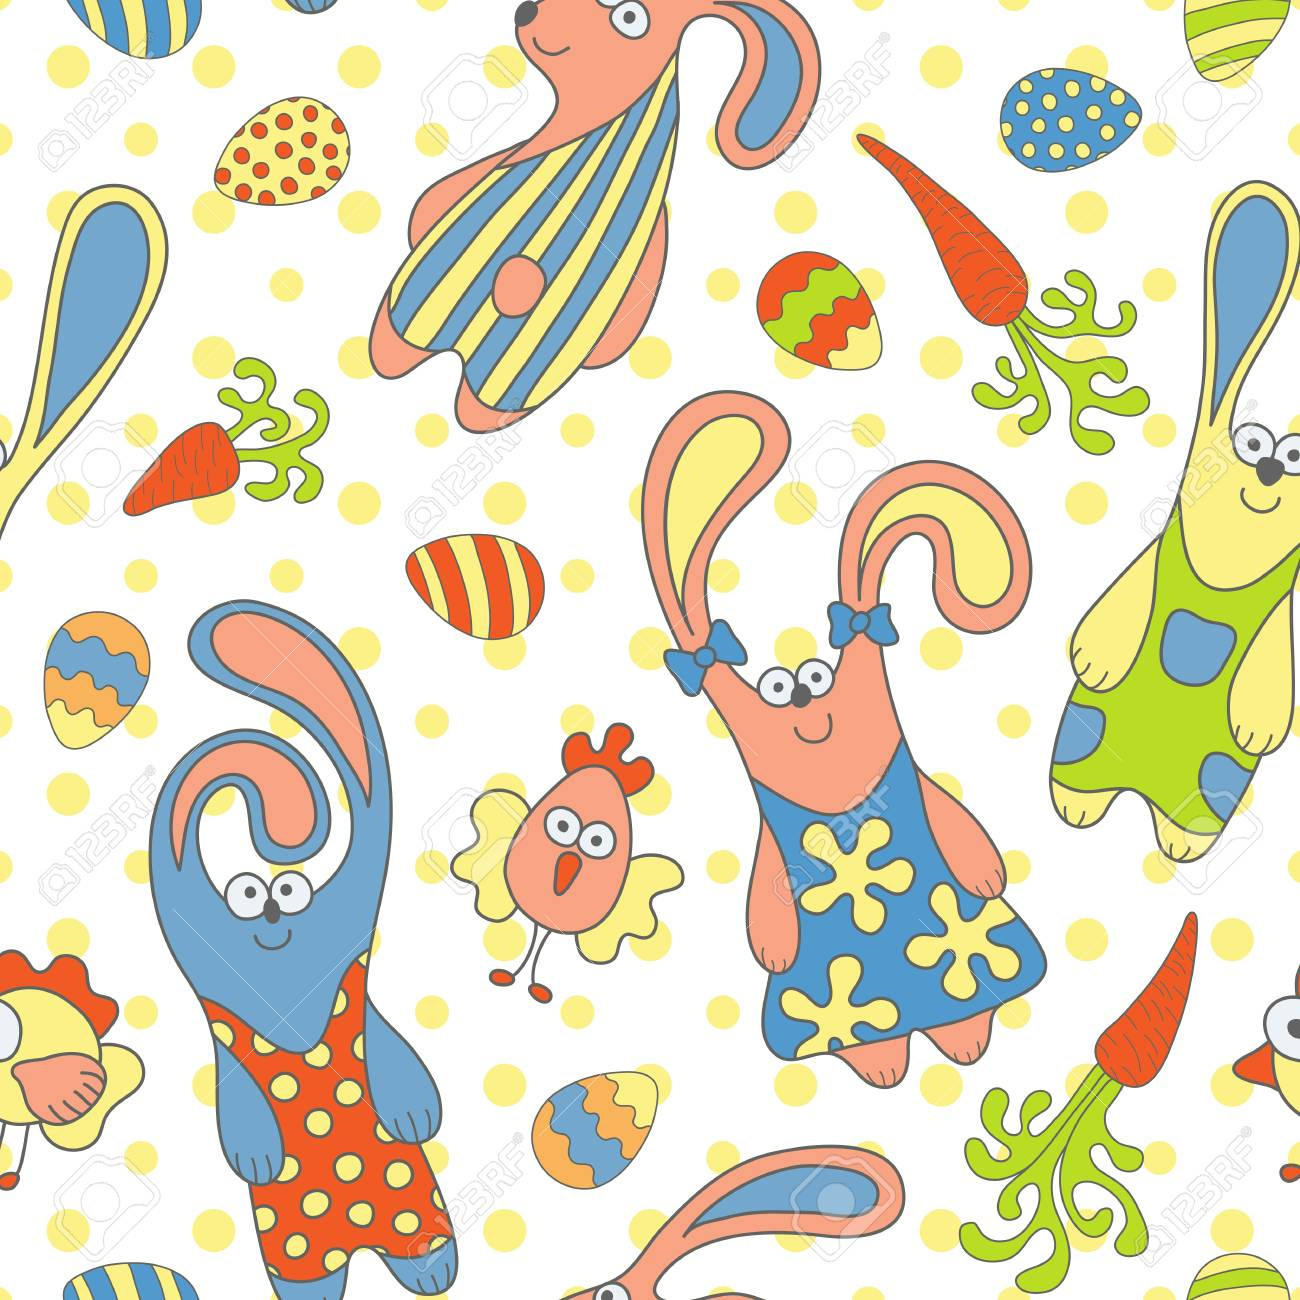 Cute seamless pattern with rabbits, carrots and chickens Stock Vector - 18189788